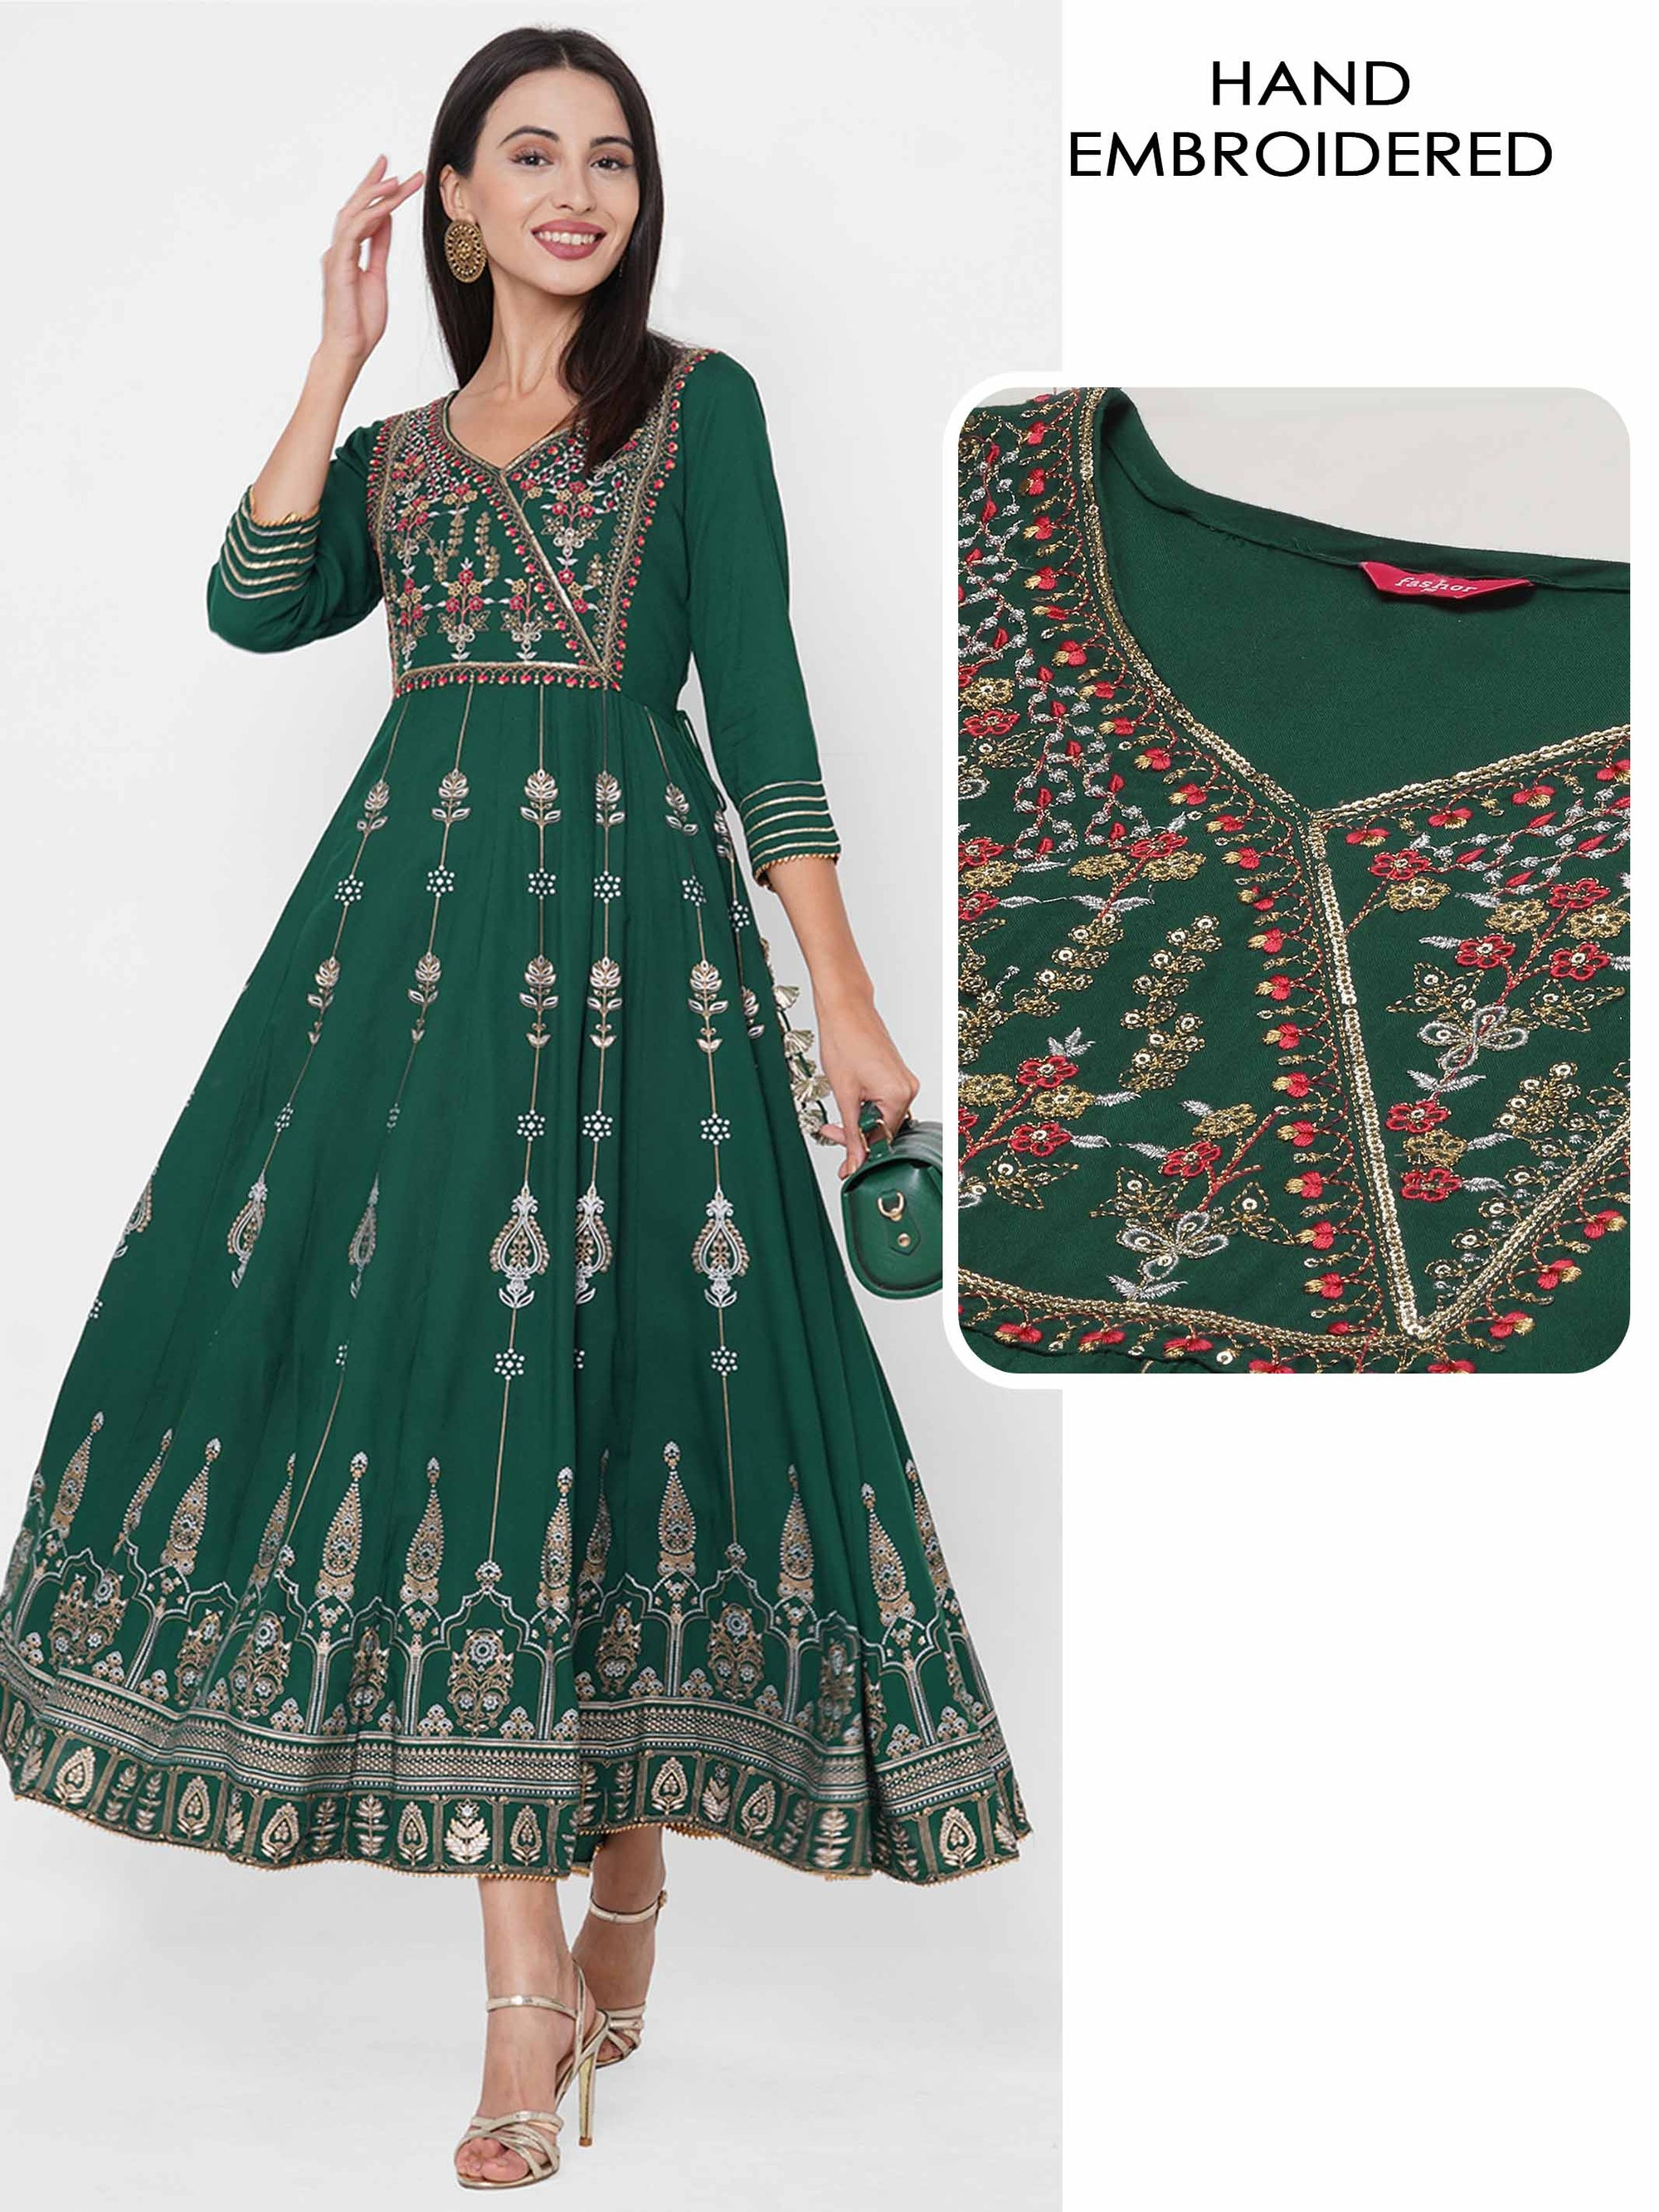 Ethnic Foil Printed & Embroidered Festive Maxi Dress - Bottle Green